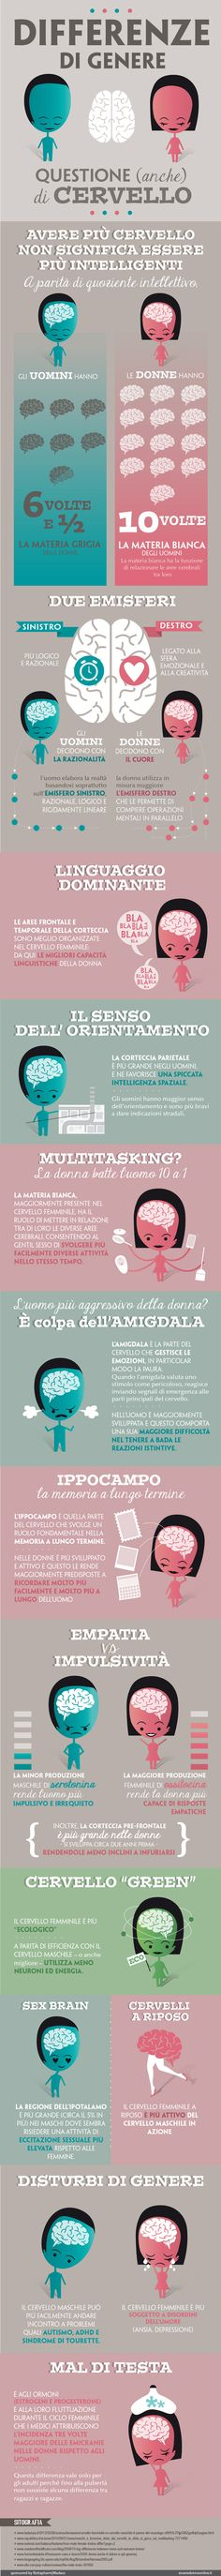 Differenze di genere? Questione anche di cervello - Infografica di Esseredonnaonline -design Kleland studio di Alice Borghi